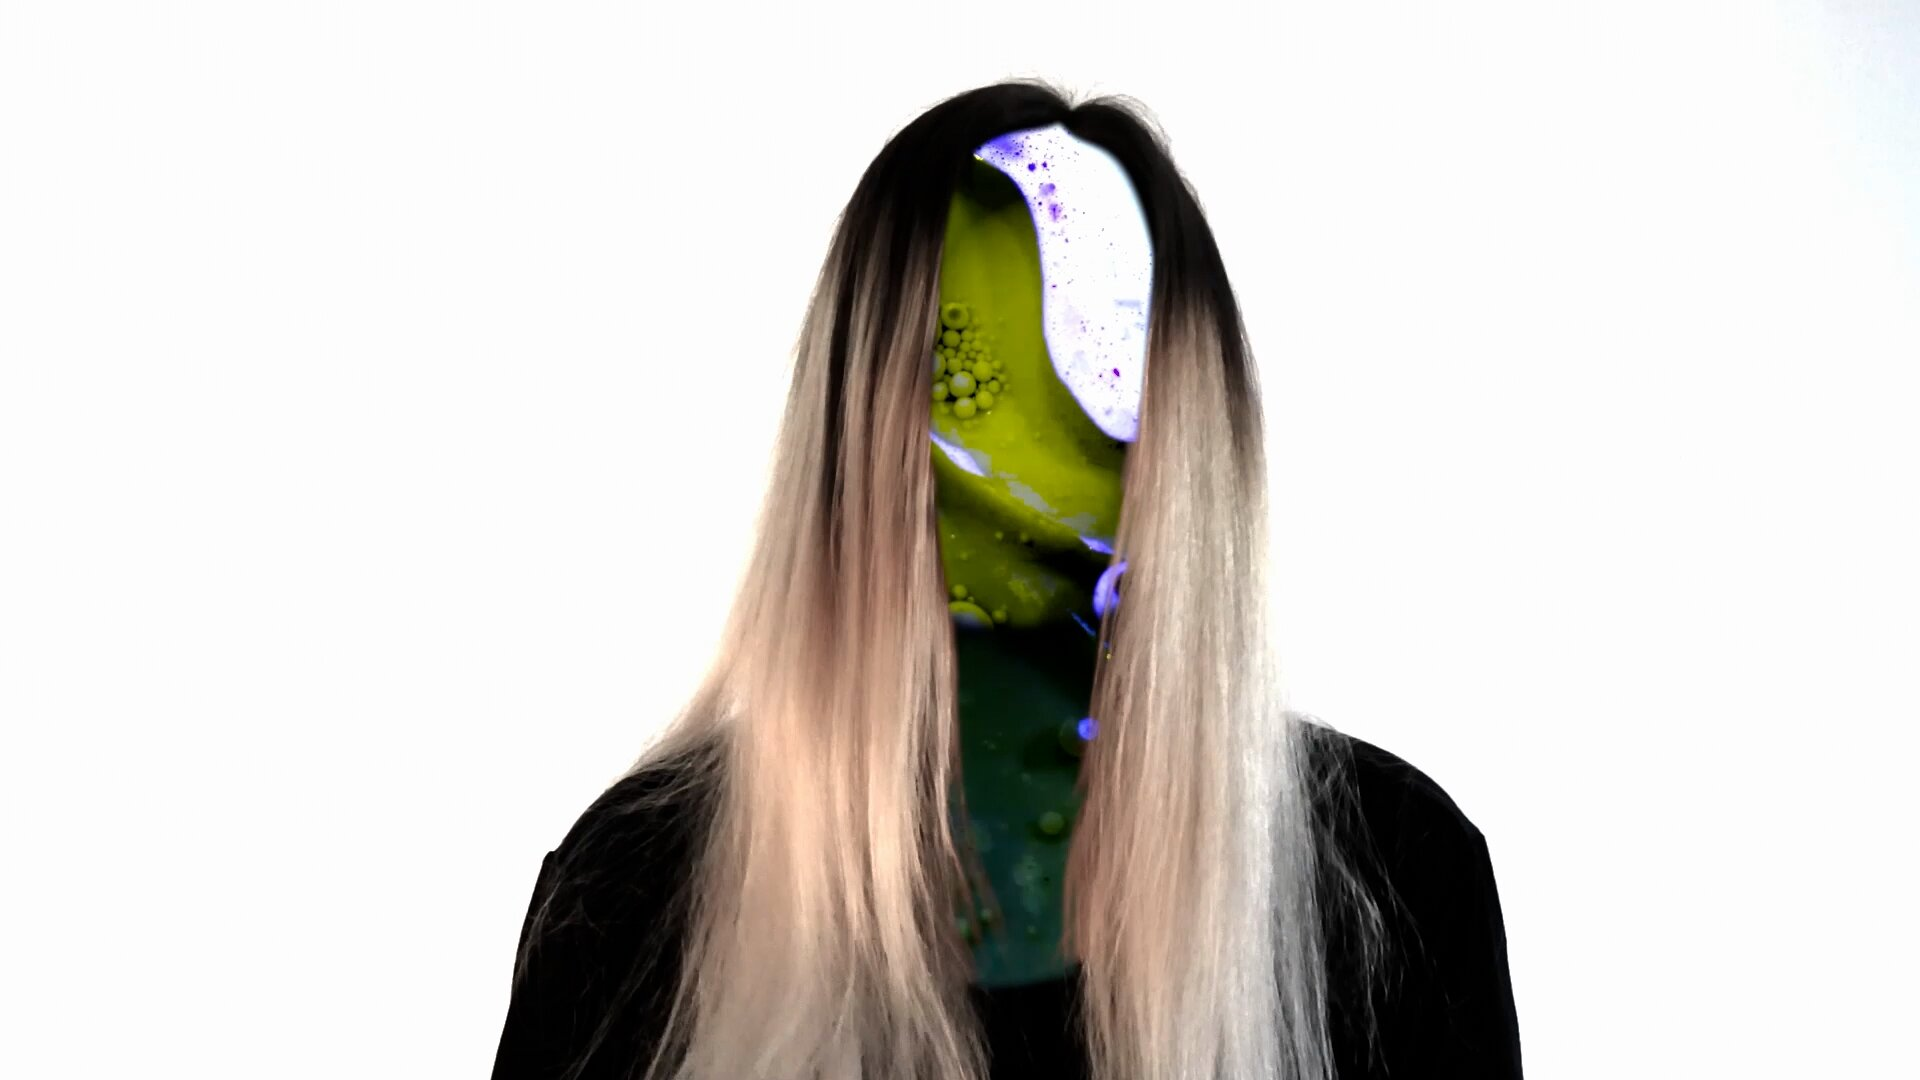 lostmyhead_facechanged_concept_v01